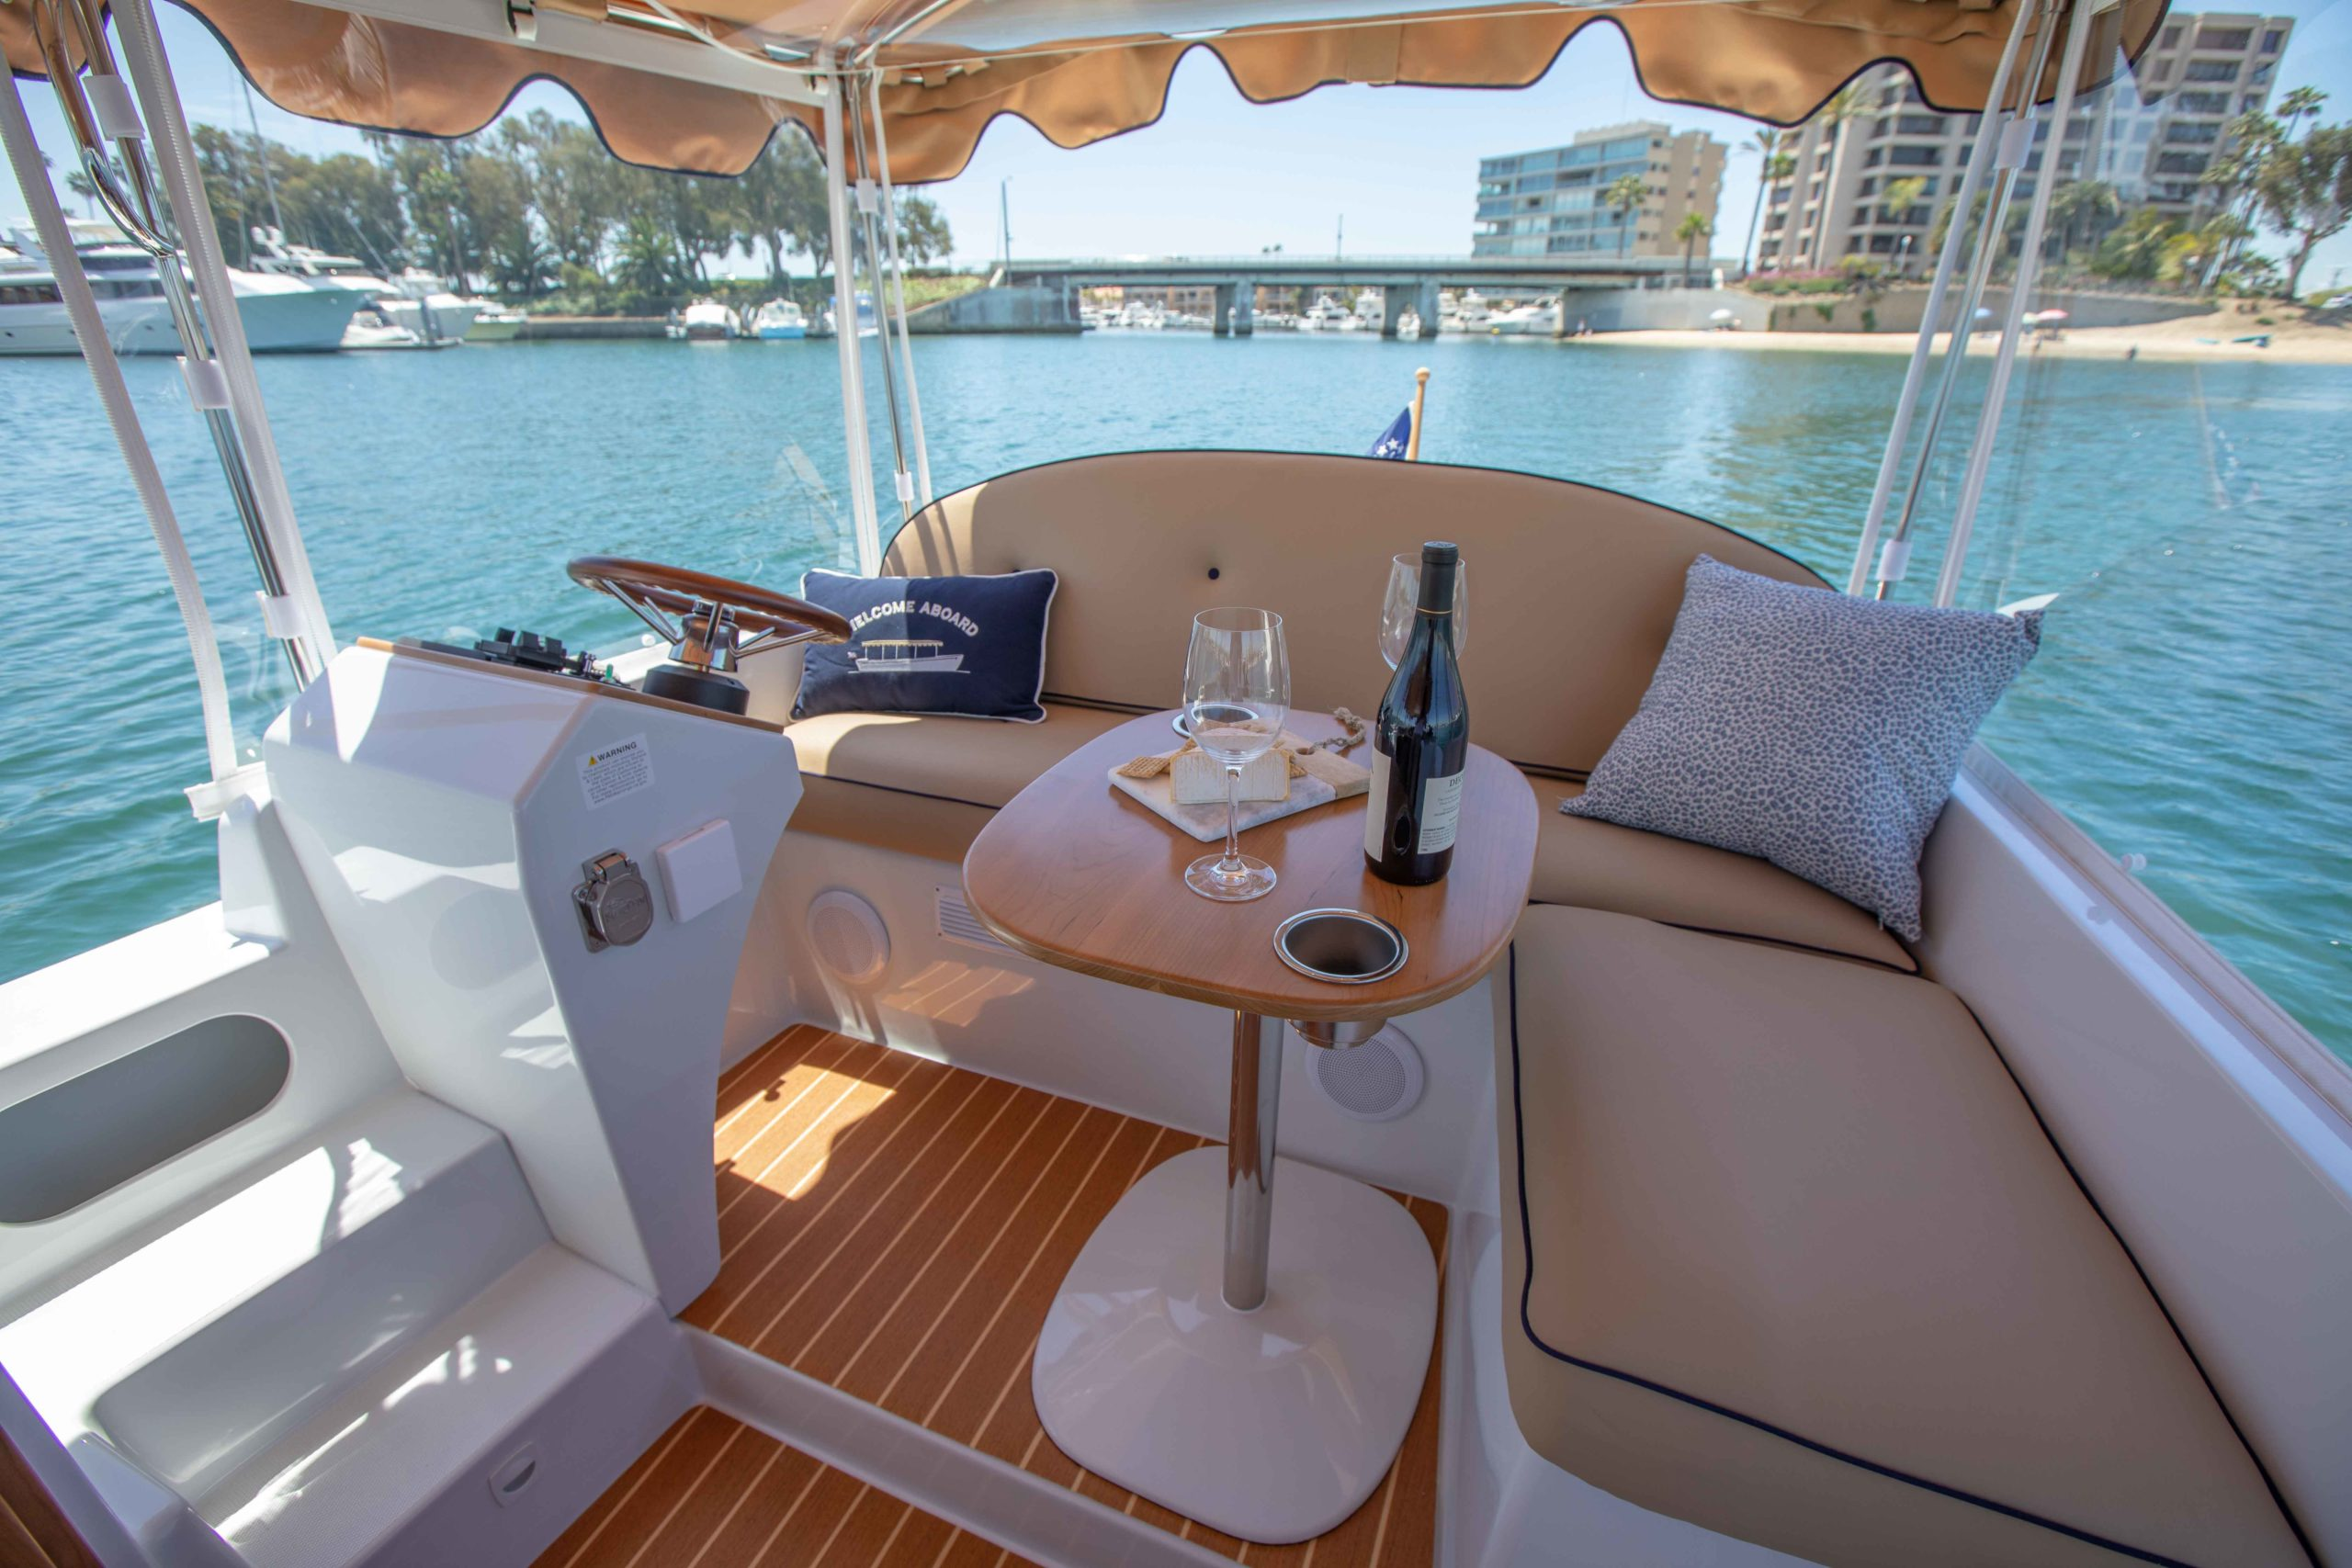 Duffy-Electric-Boats-22-Cuddy-Cabin-Interior-9